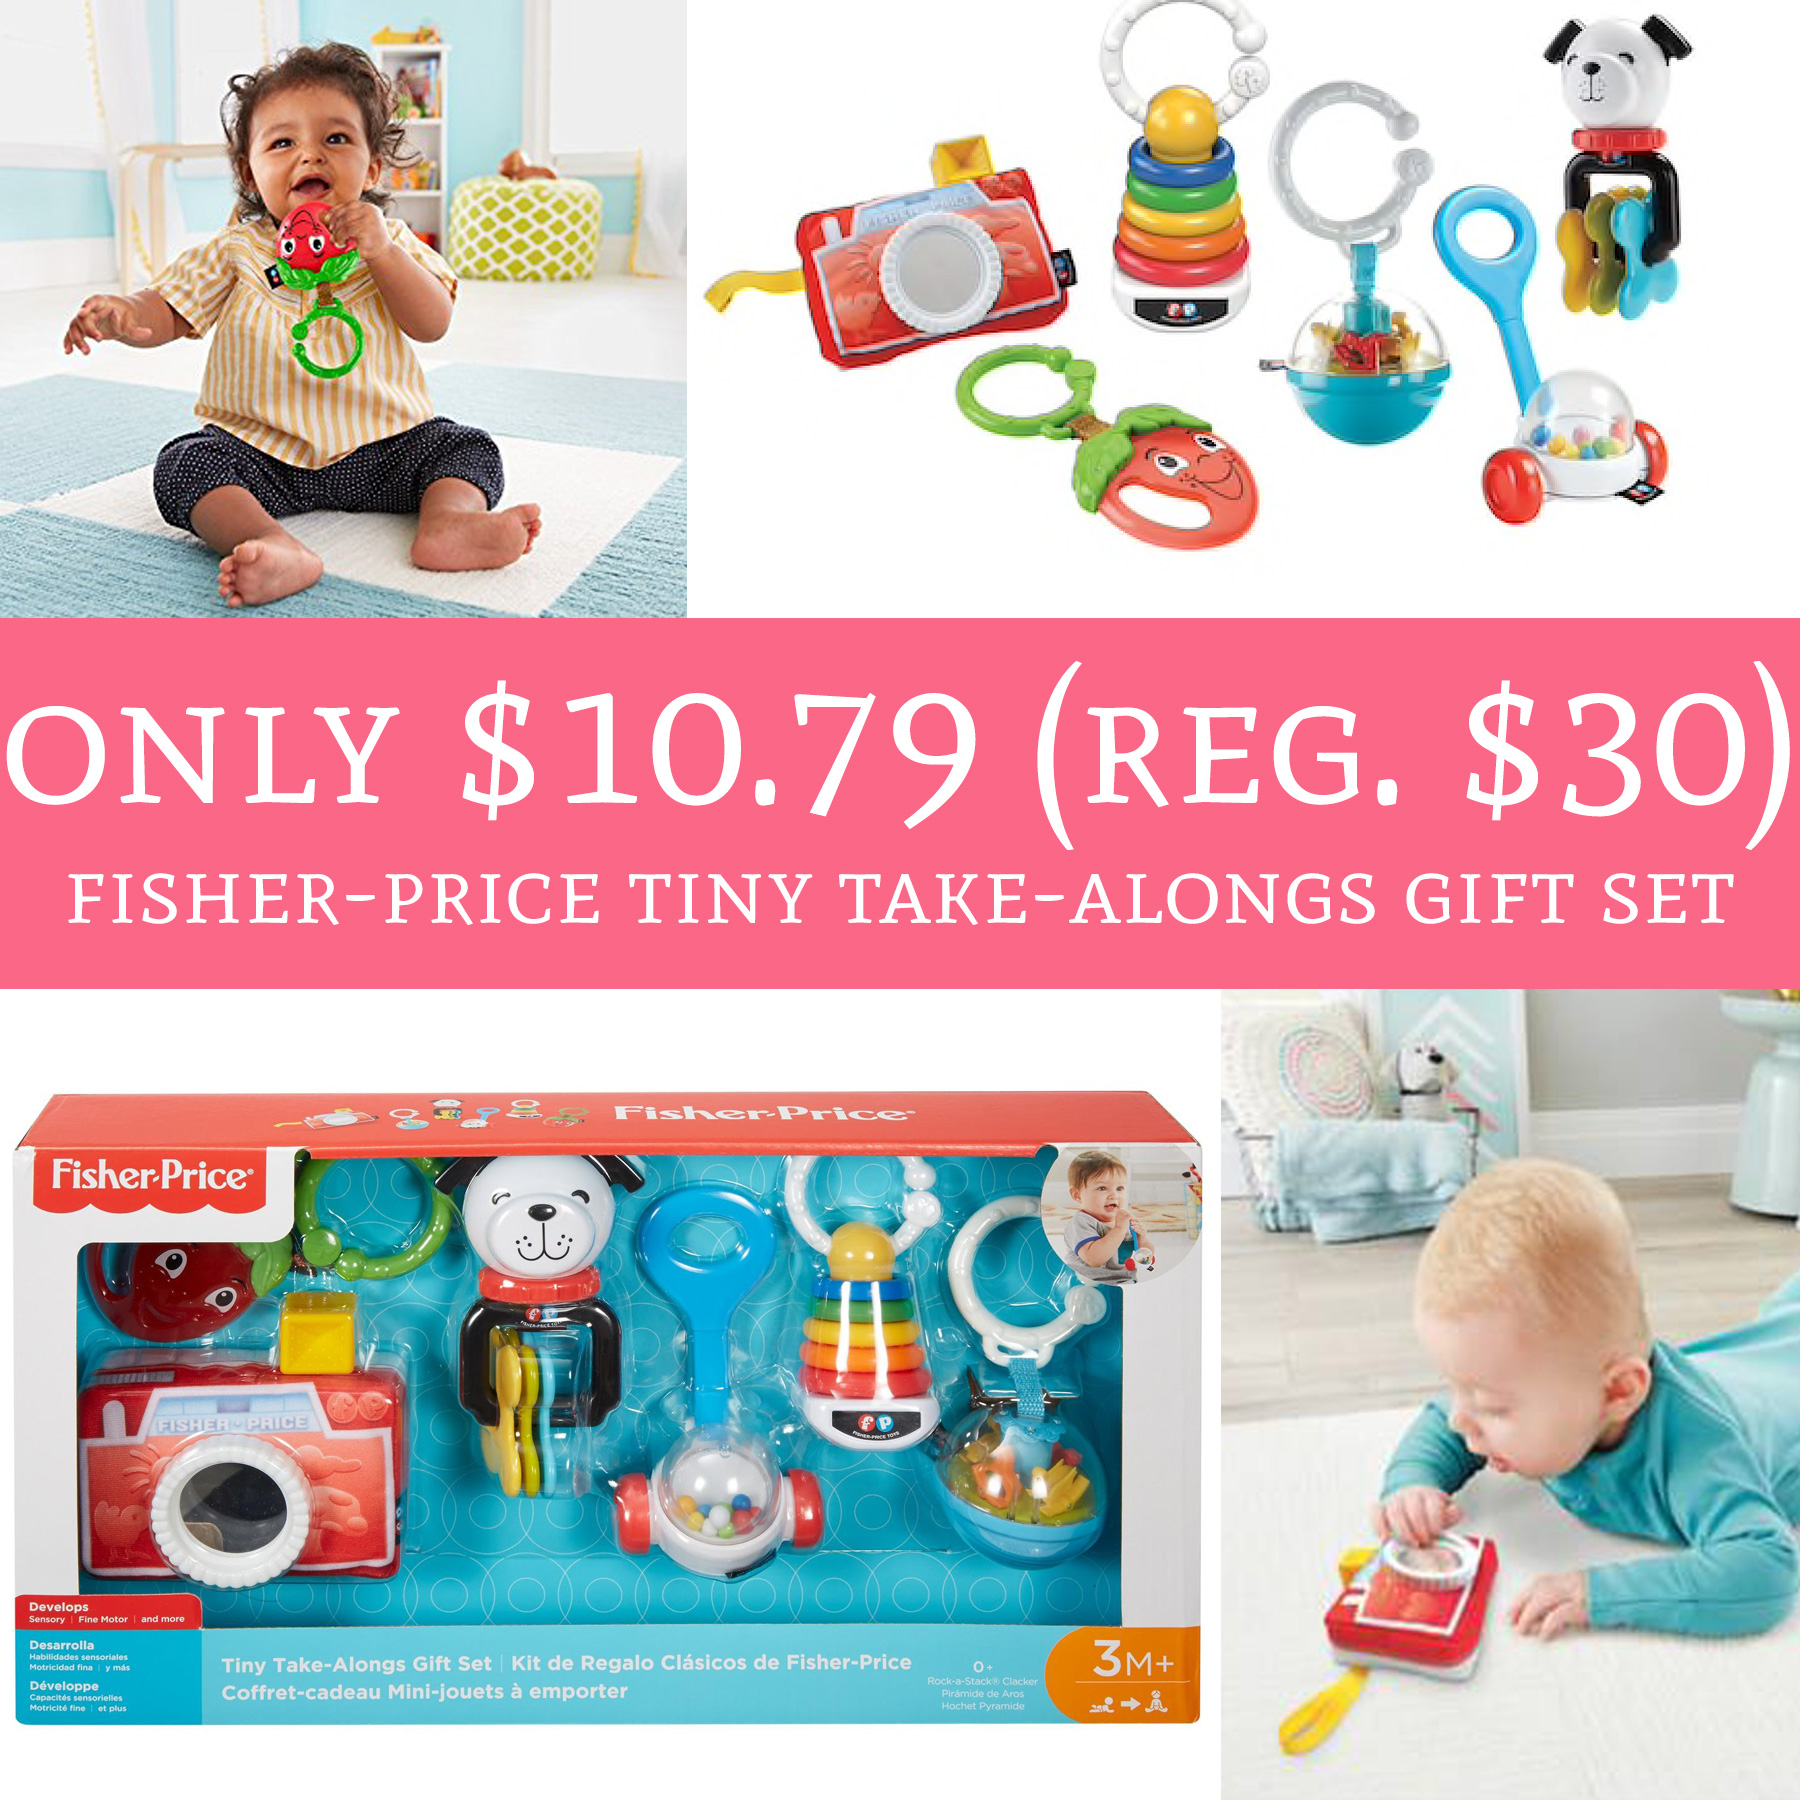 Frys weekly ad features tons of instant savings and promo codes, but the deals don't stop with just the Frys ad. There are a variety of ways to save when you shop at Frys, from a fantastic price matching policy to the robust Frys clearance section, we're featuring all the best deals for saving big at Frys.